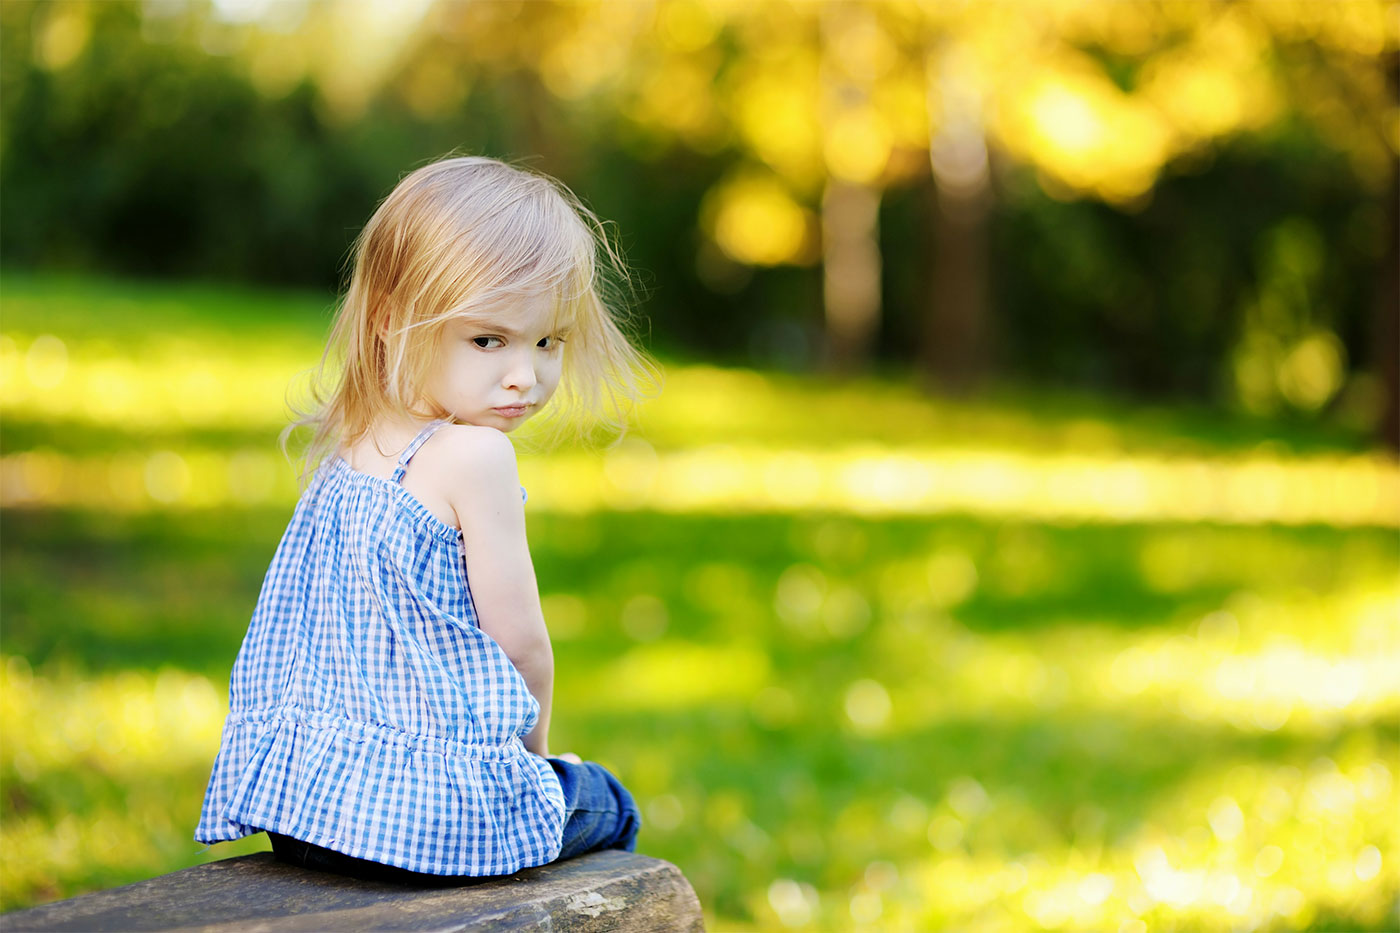 Mad little girl sitting on a rock outdoors, facing backward